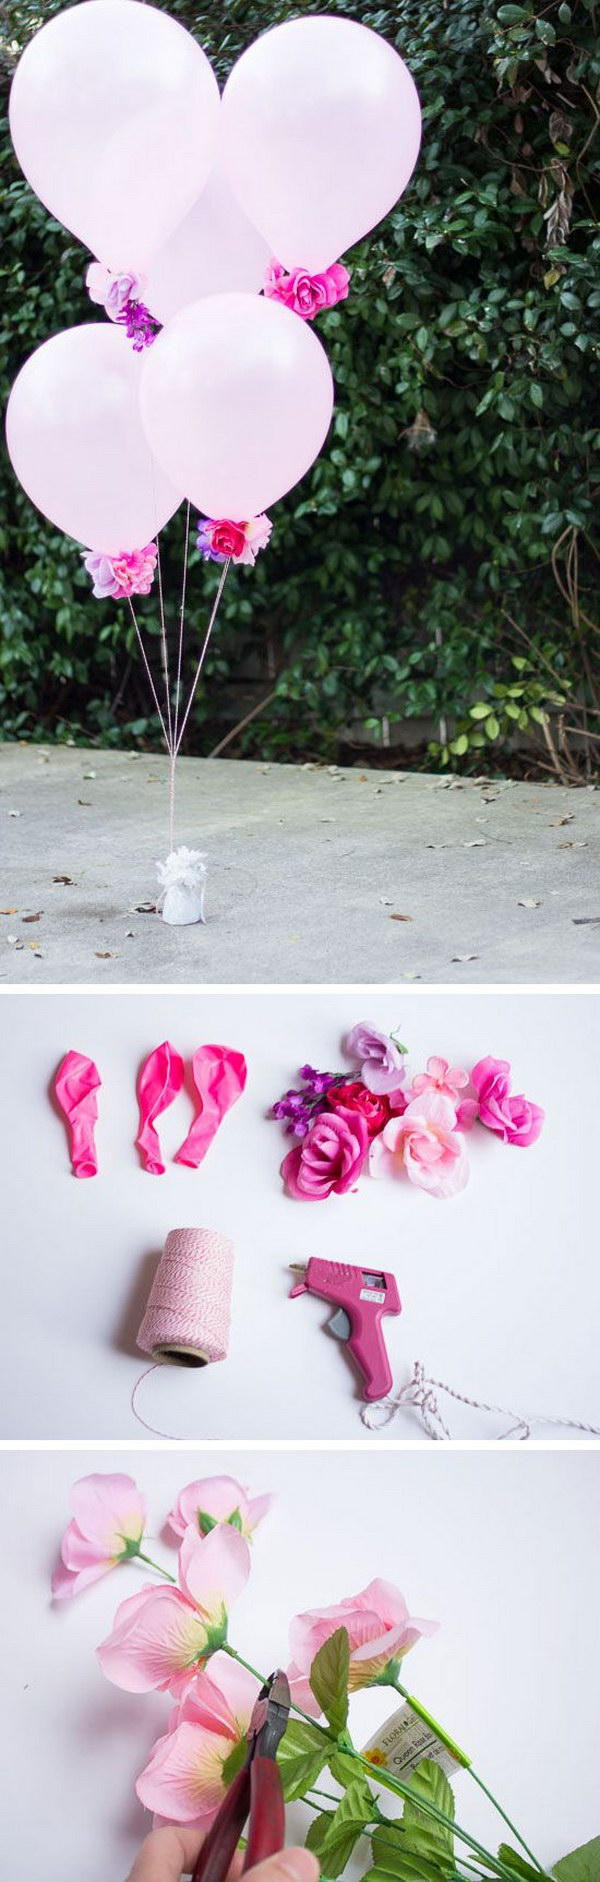 DIY Flower Balloons